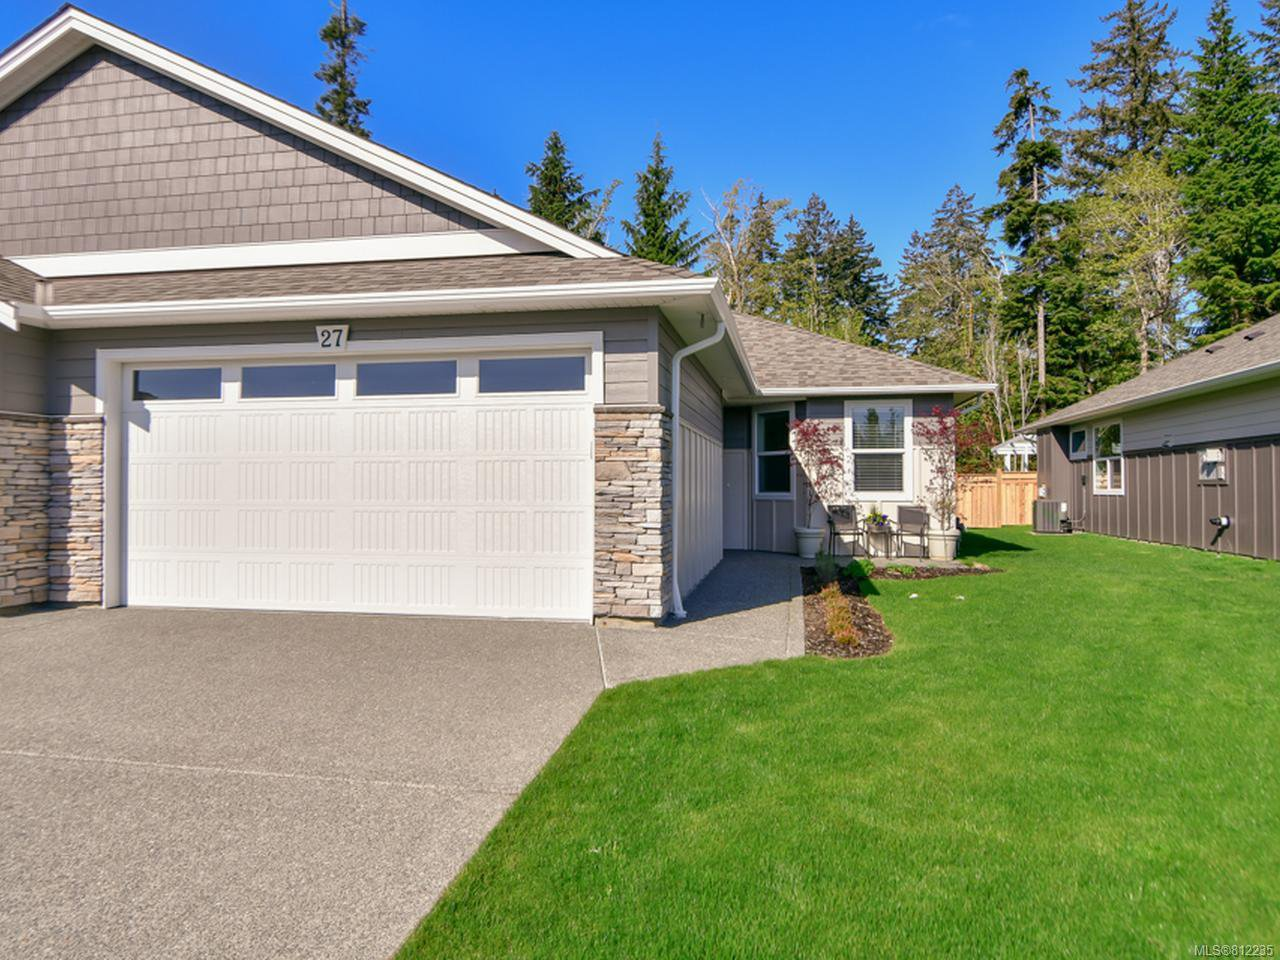 Main Photo: 27 2000 TREELANE ROAD in CAMPBELL RIVER: CR Campbell River West Row/Townhouse for sale (Campbell River)  : MLS®# 812235